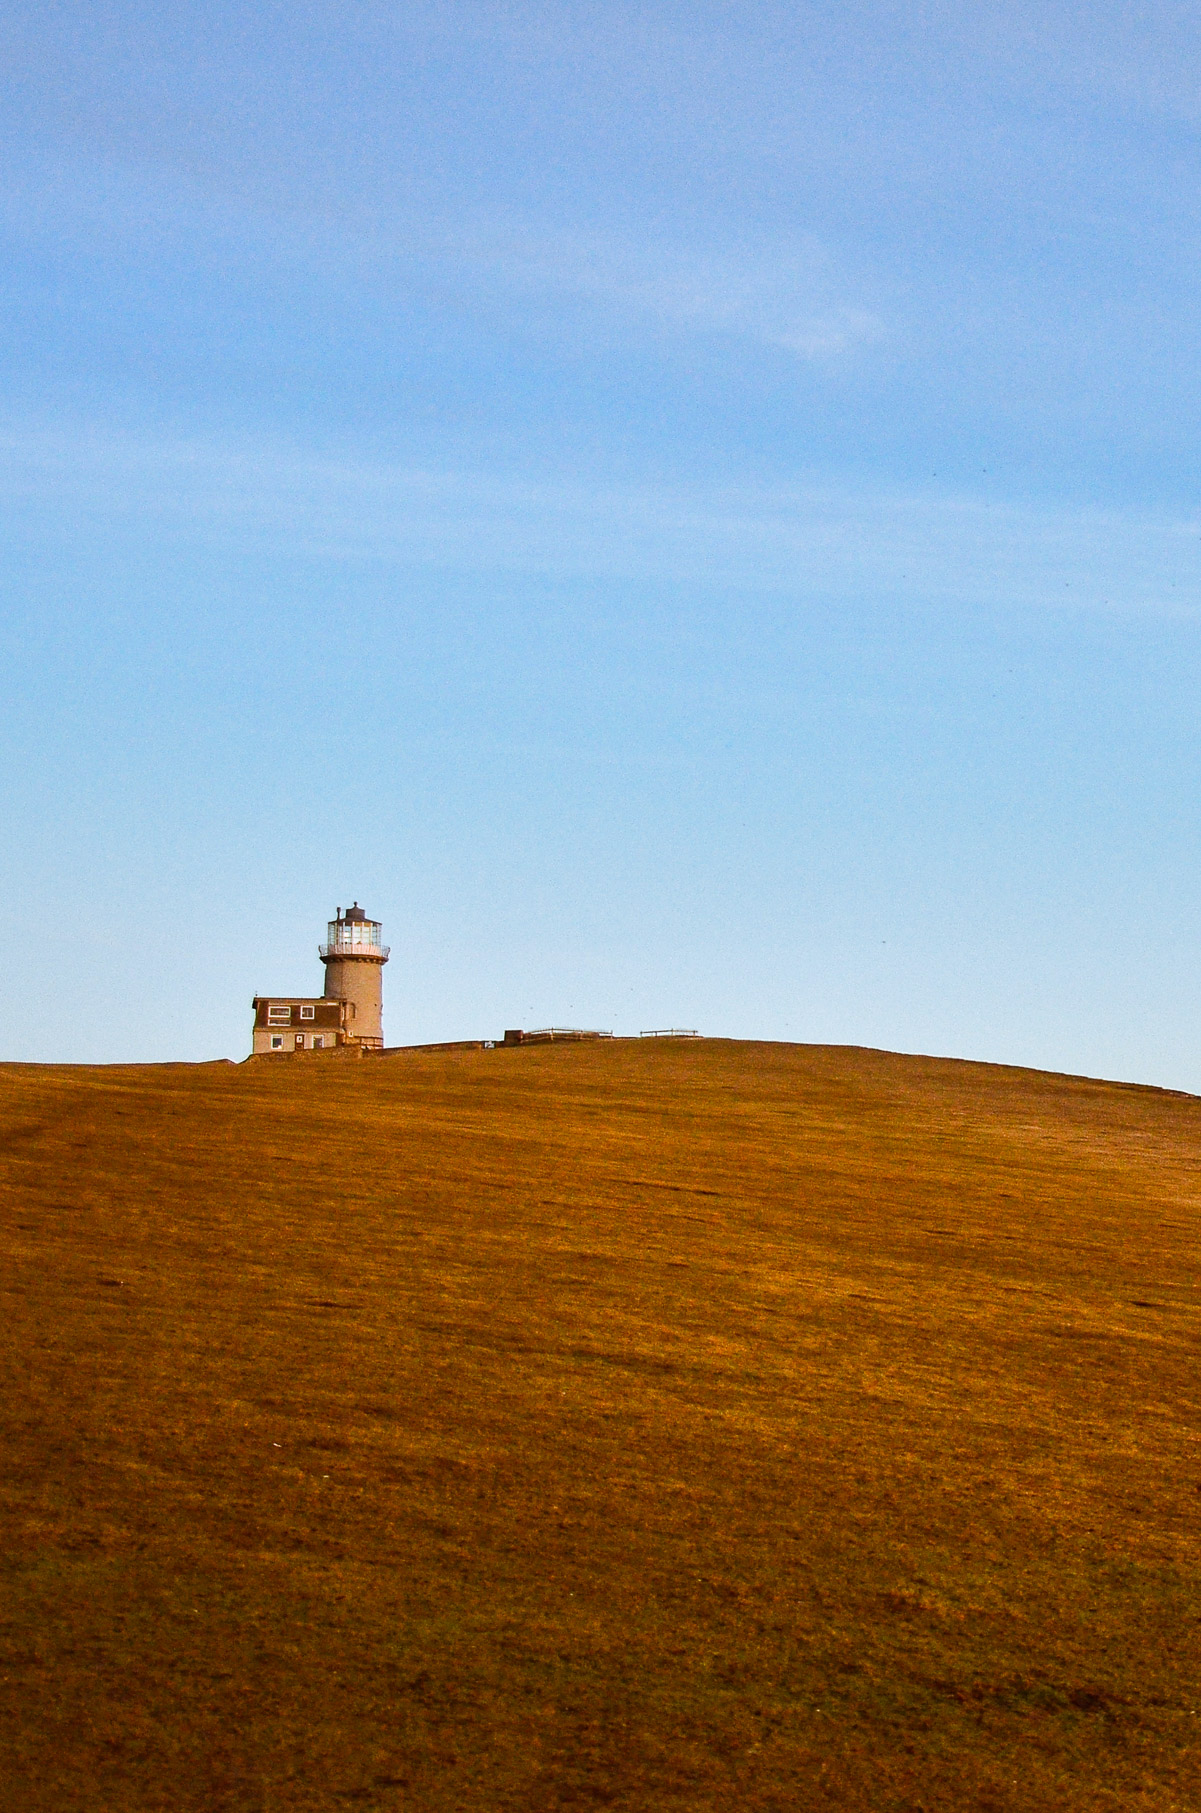 Example of leading lines in travel photography, lighthouse on an orange hill and blue sky